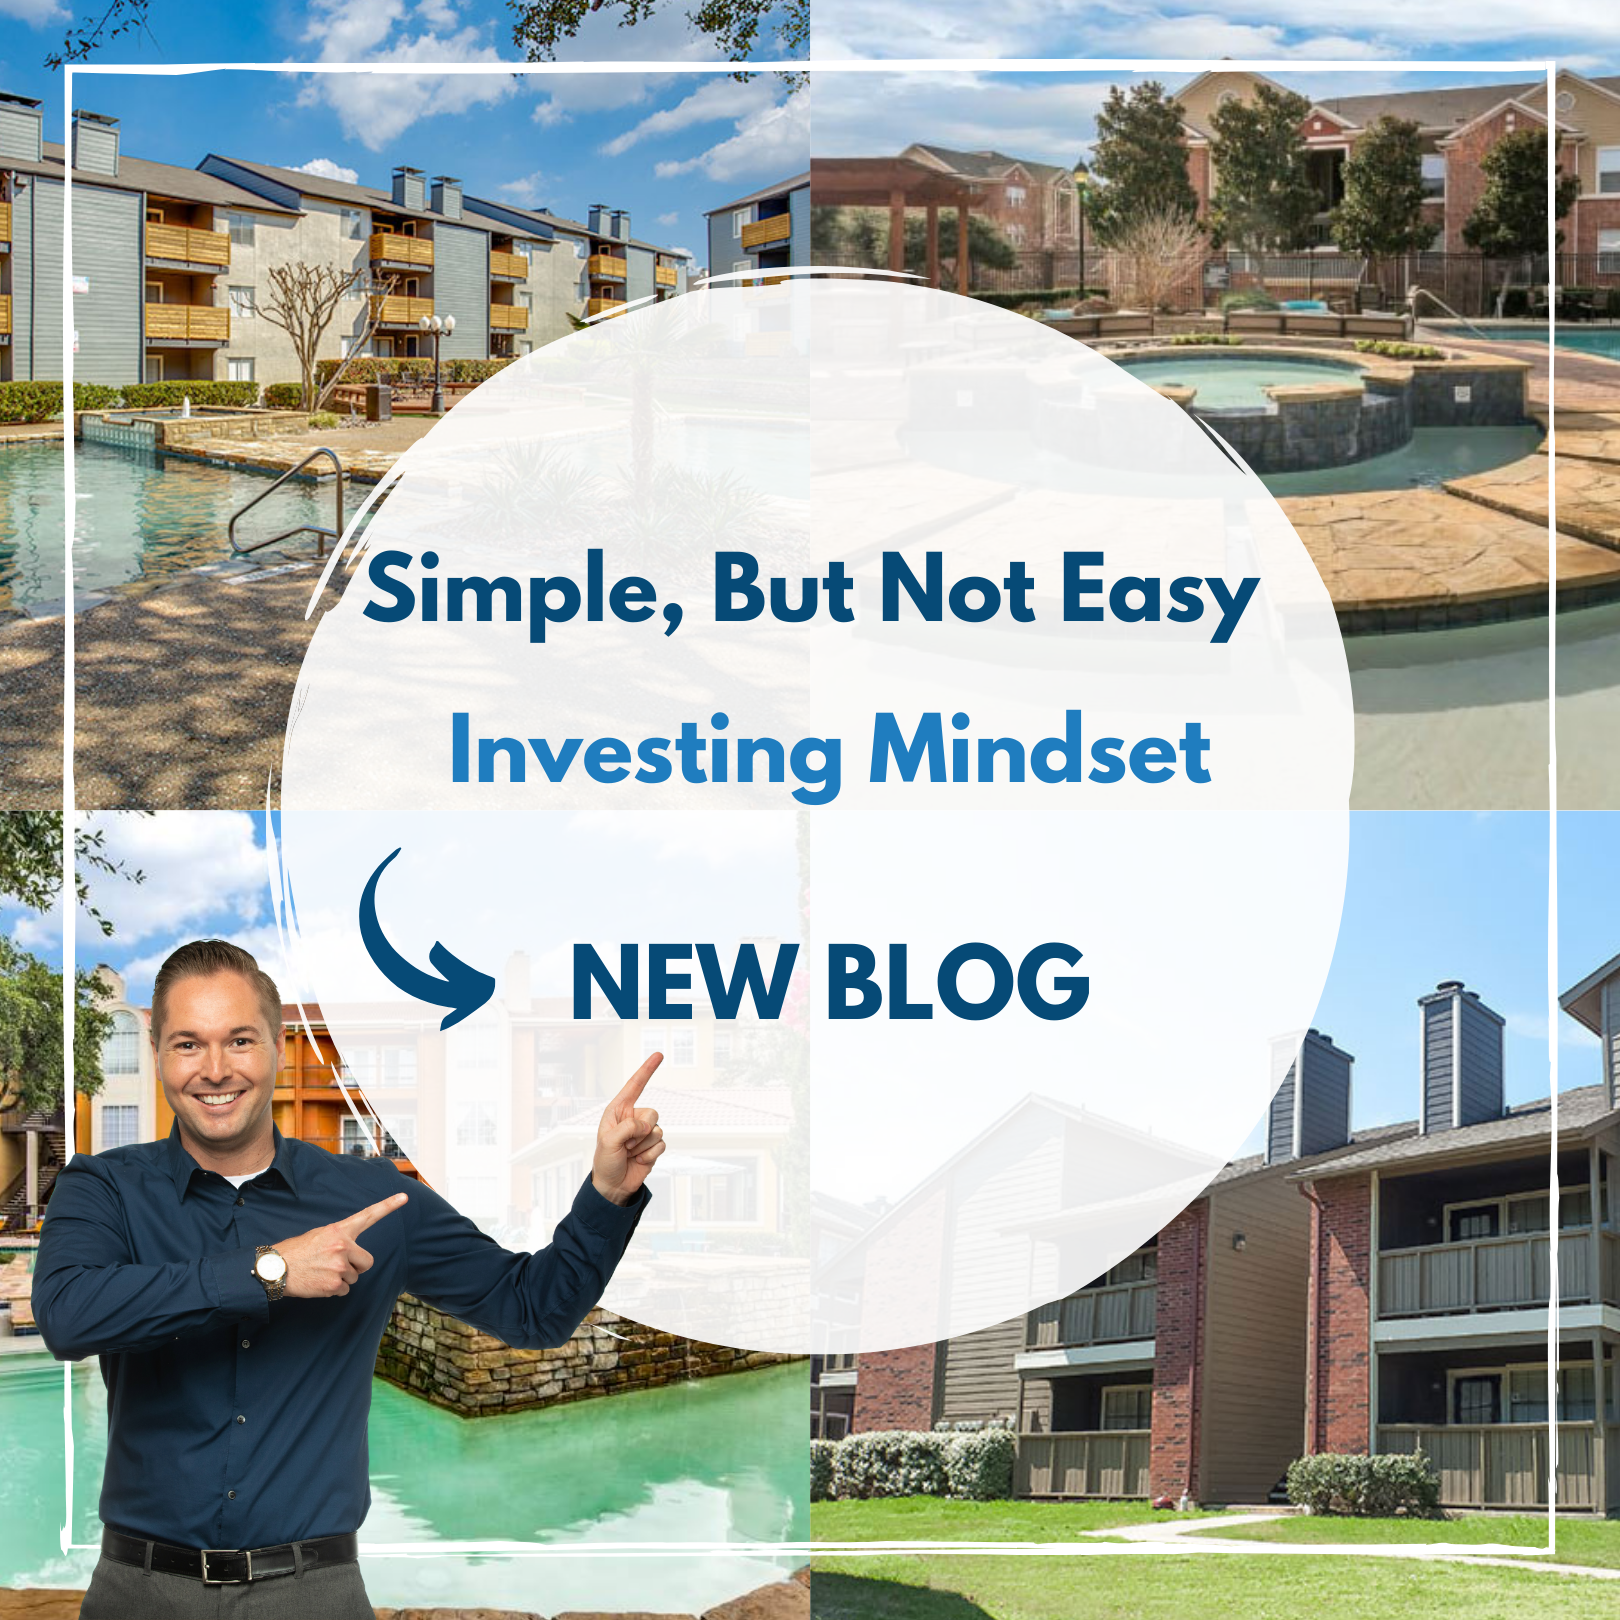 Simple, But Not Easy – Investing Mindset